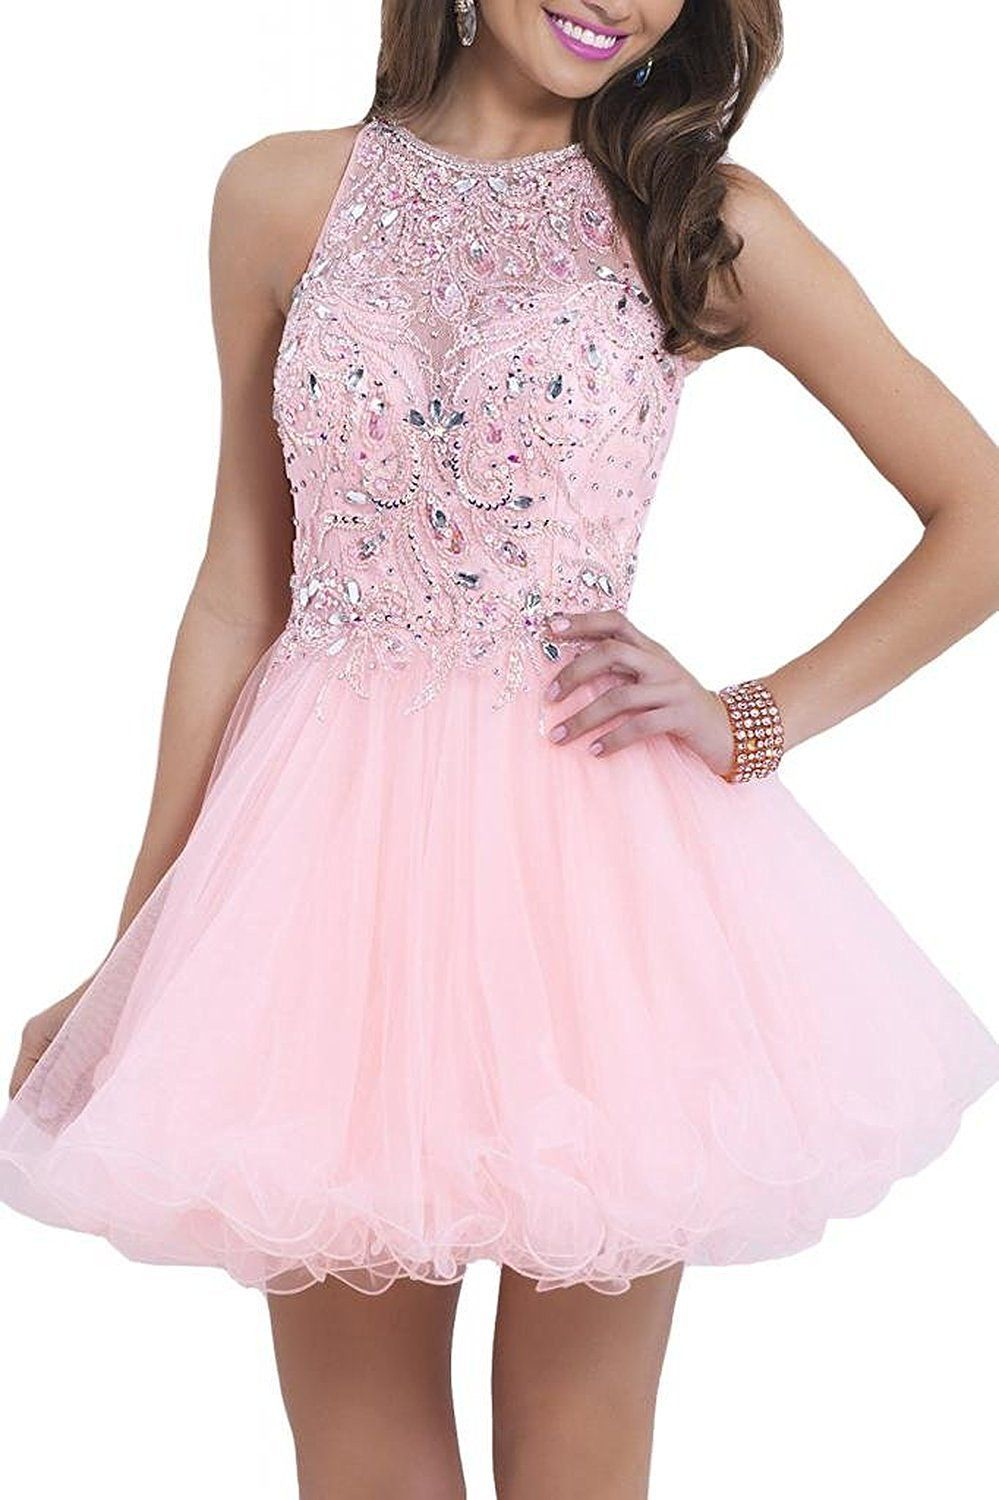 Product not available backless homecoming dresses homecoming